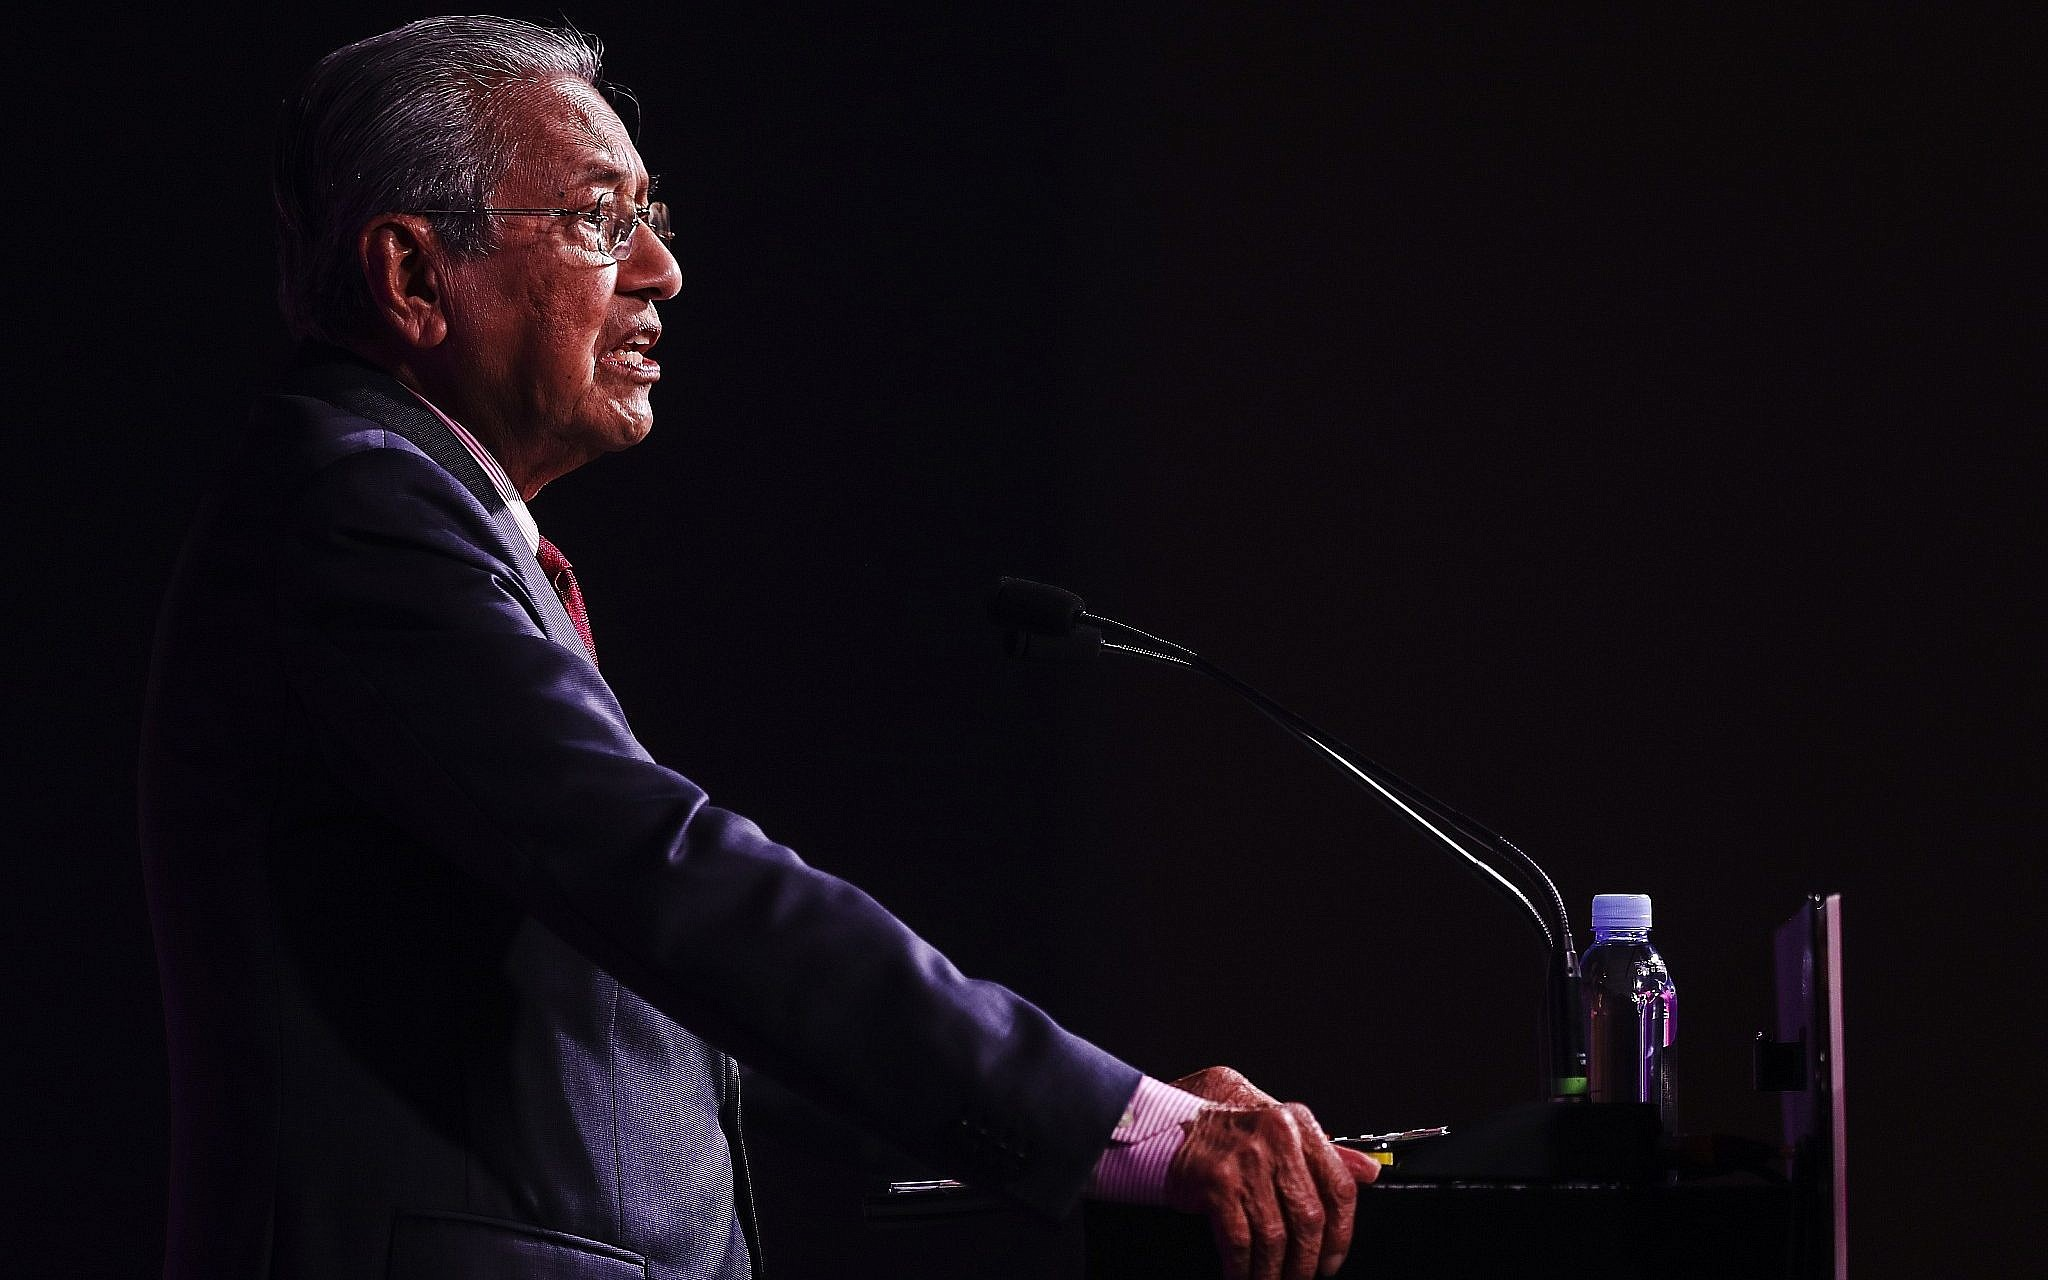 Why is Columbia giving the Jew-hating Mahathir a stage?